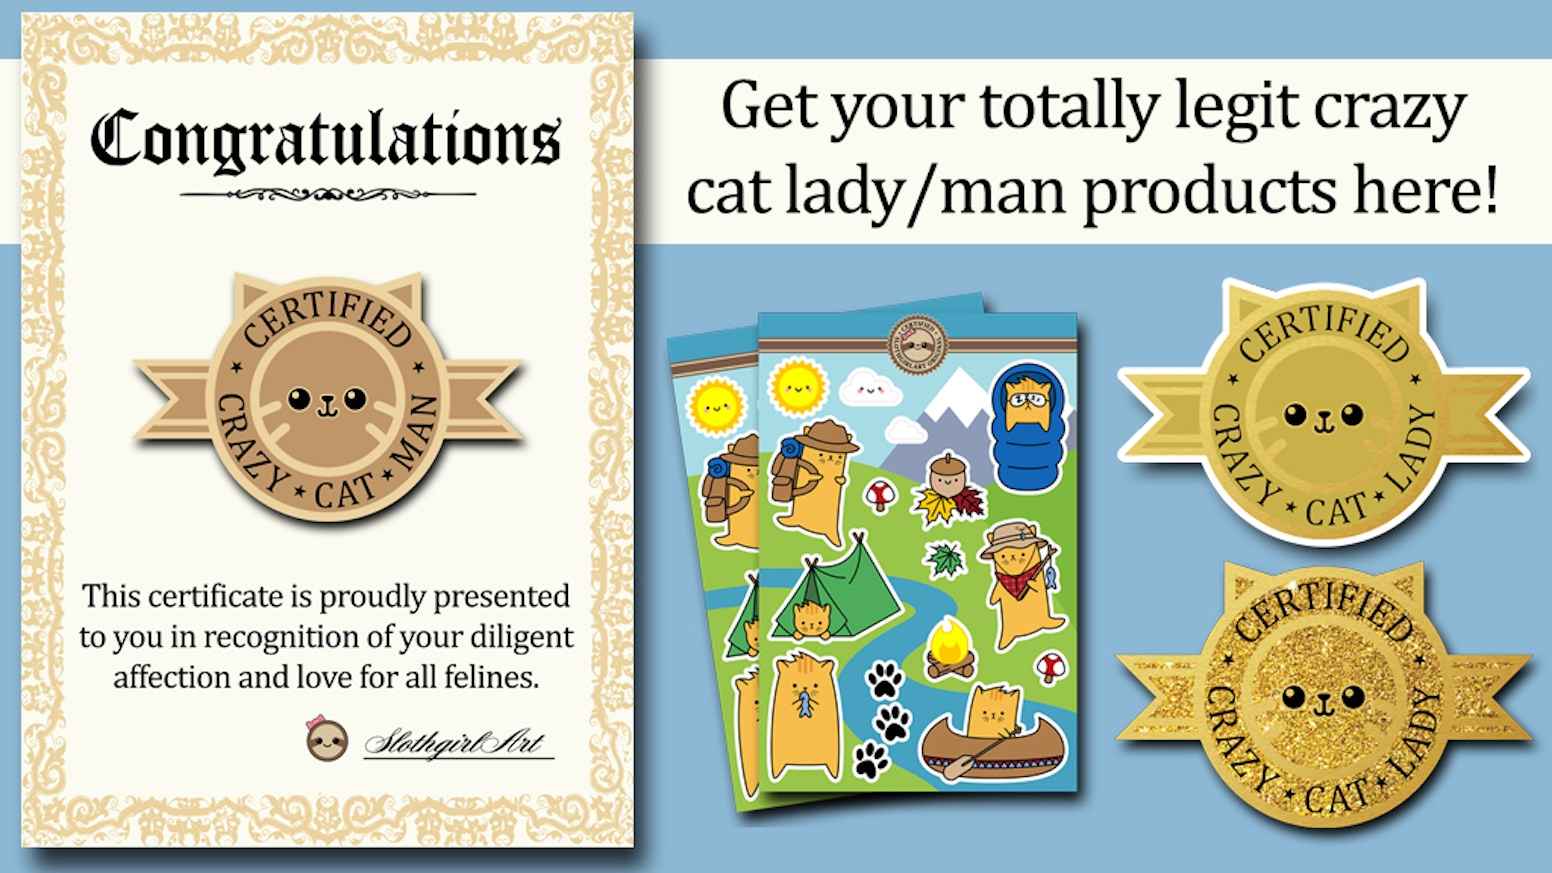 certified crazy cat lady man pins and other products by